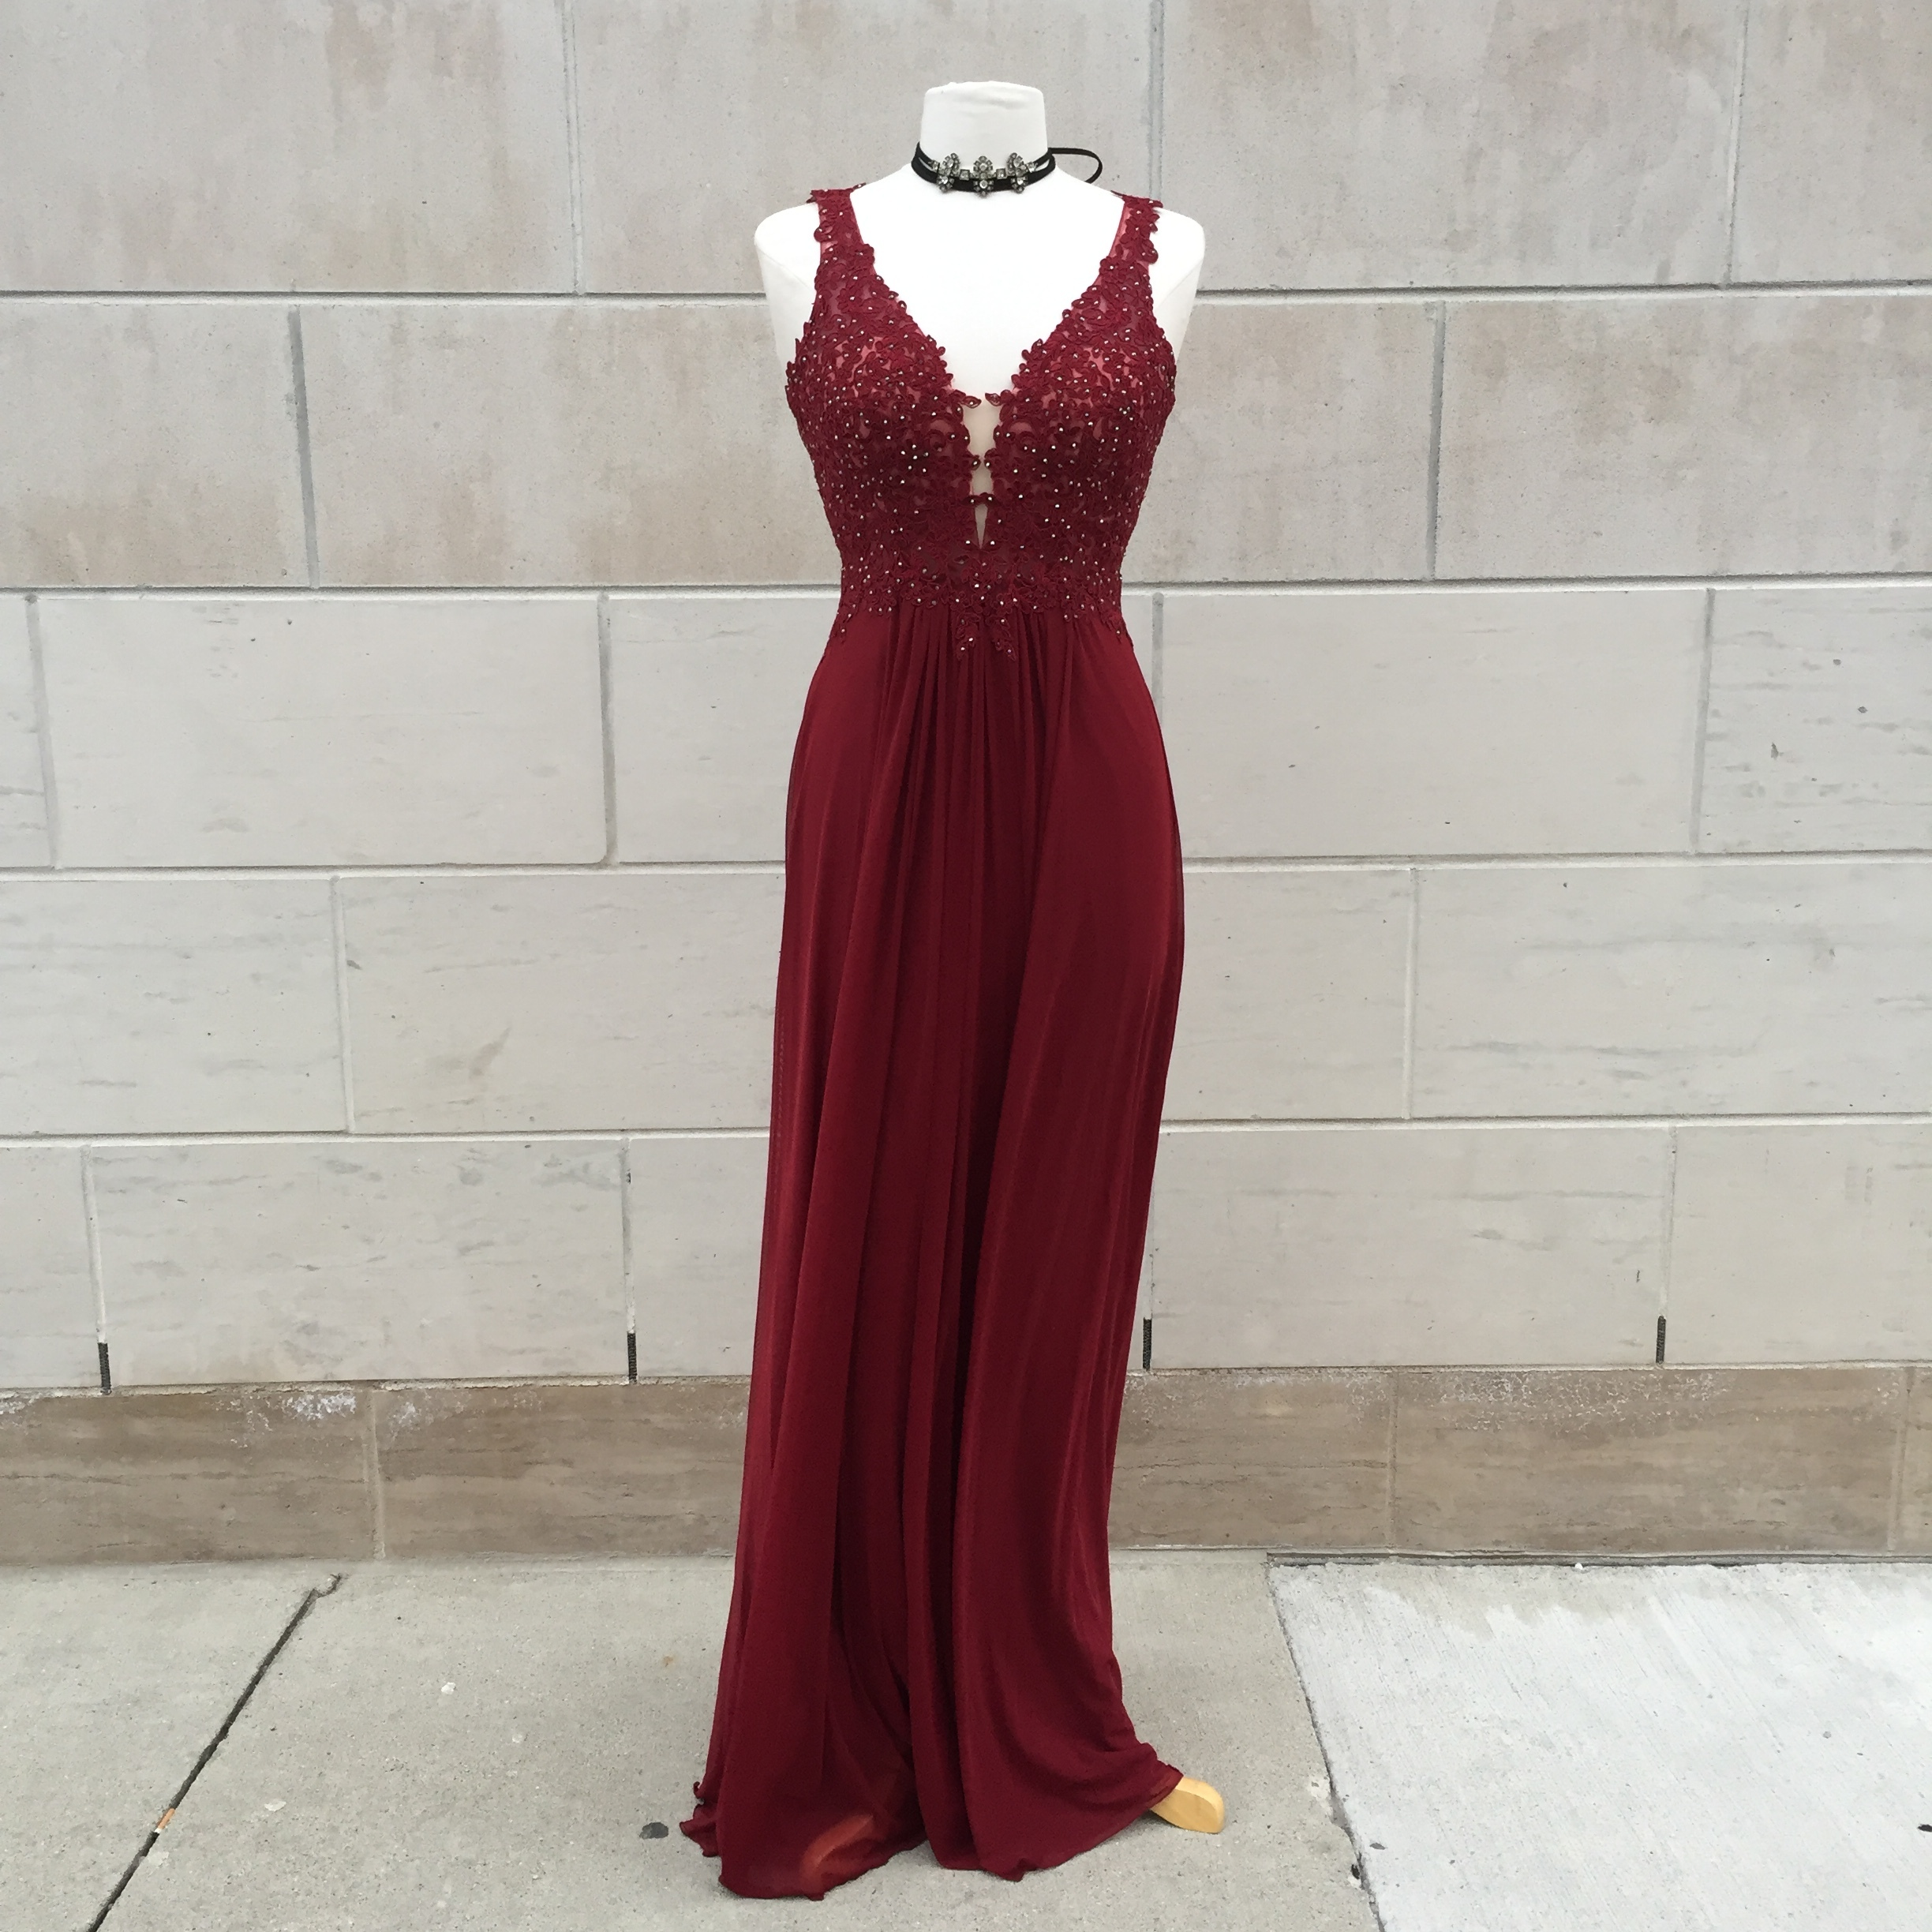 Available in merlot, navy, black and cloud. Current sizes in stock: 00, 0, 2, 4, 6, 10, & 14